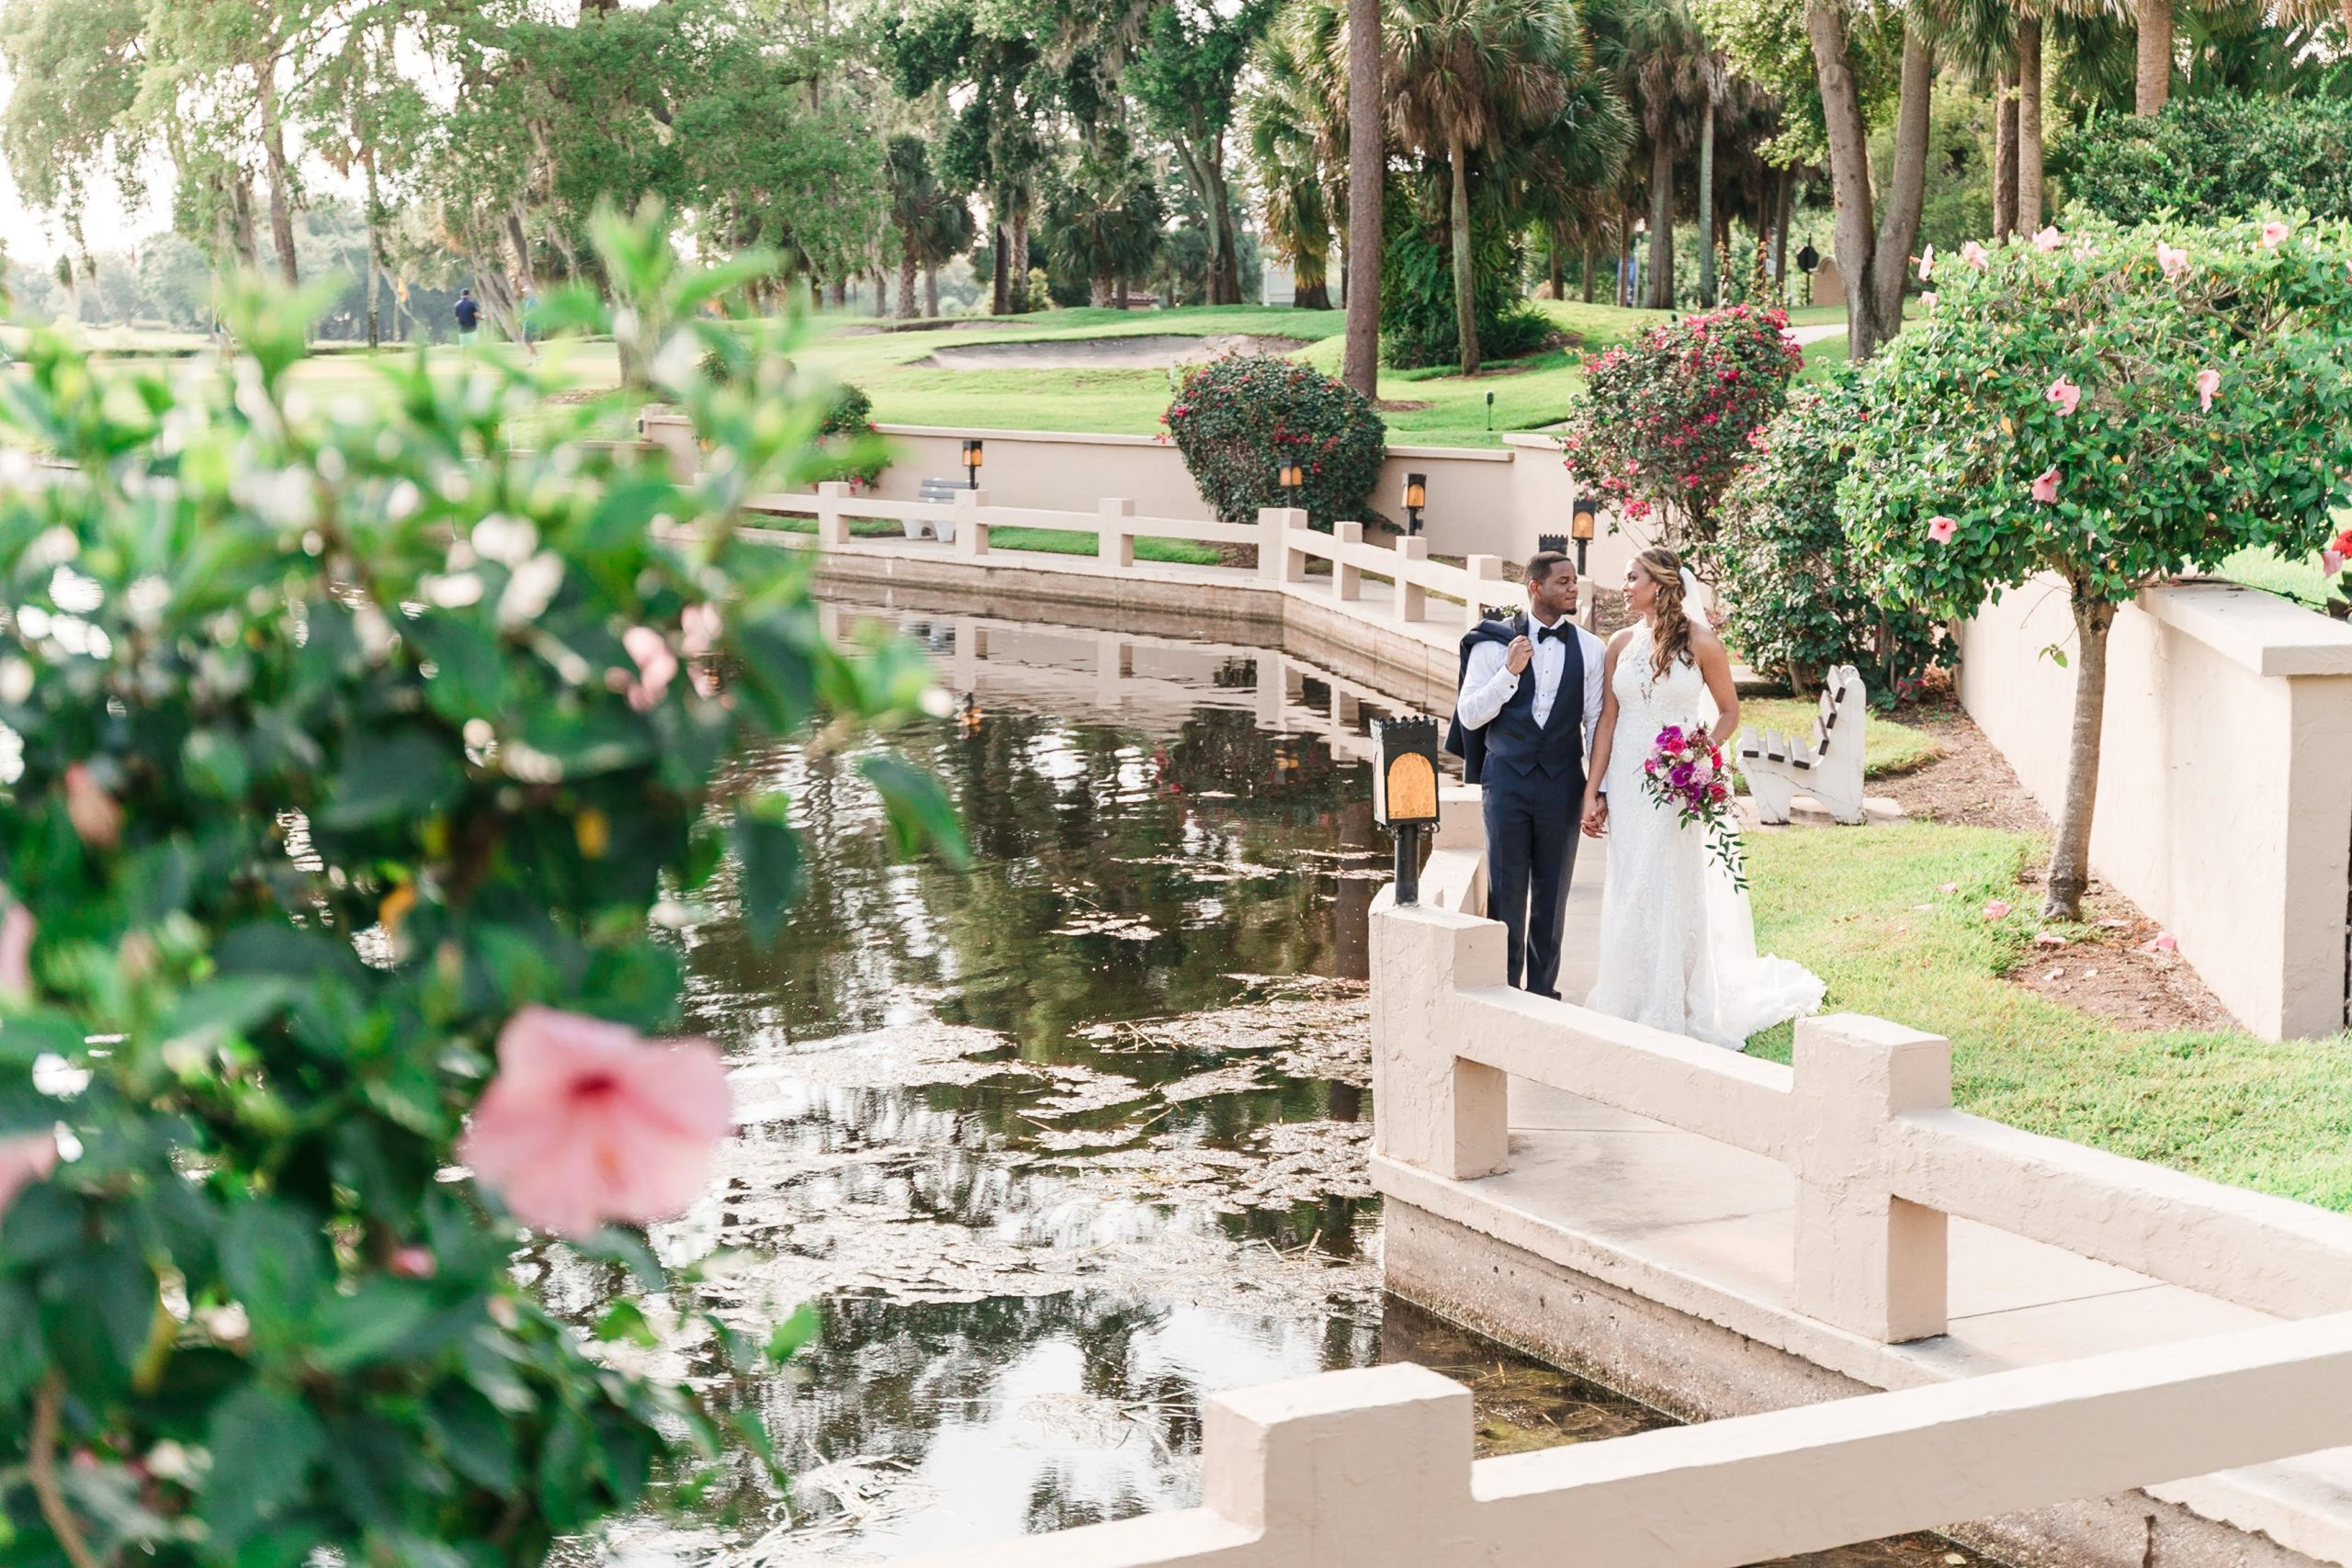 bride and groom walking on garden path next to lake